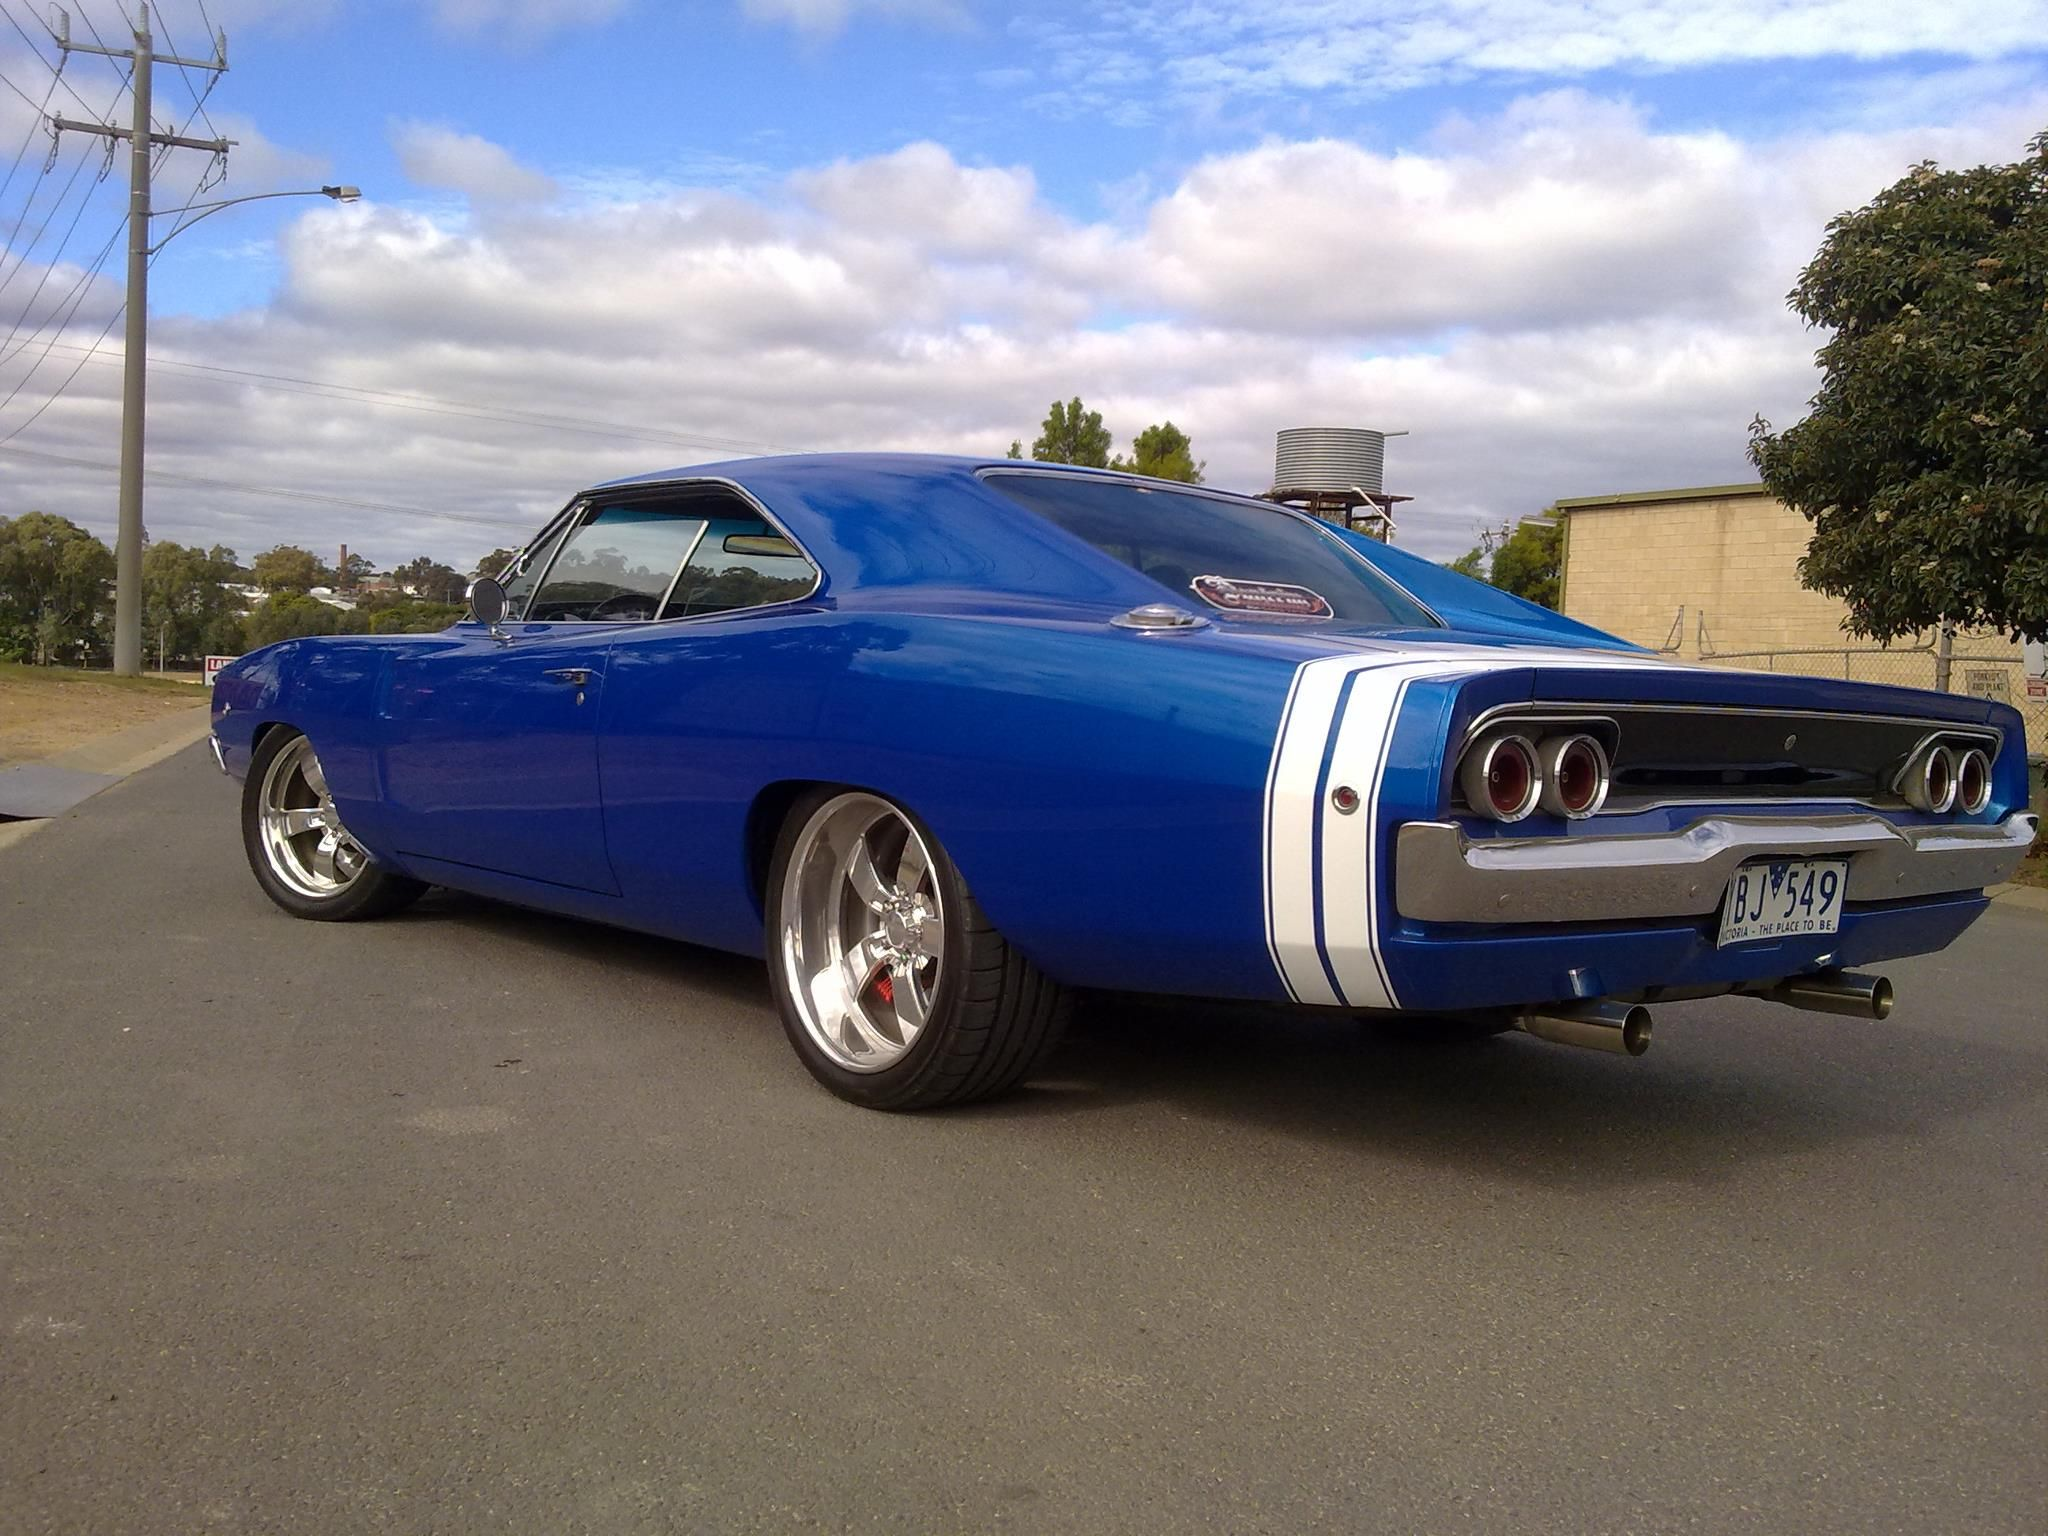 The 1970 dodge charger specs http www ofertasport com the 1970 dodge charger specs charger cars pinterest dodge charger dodge and dodge charger